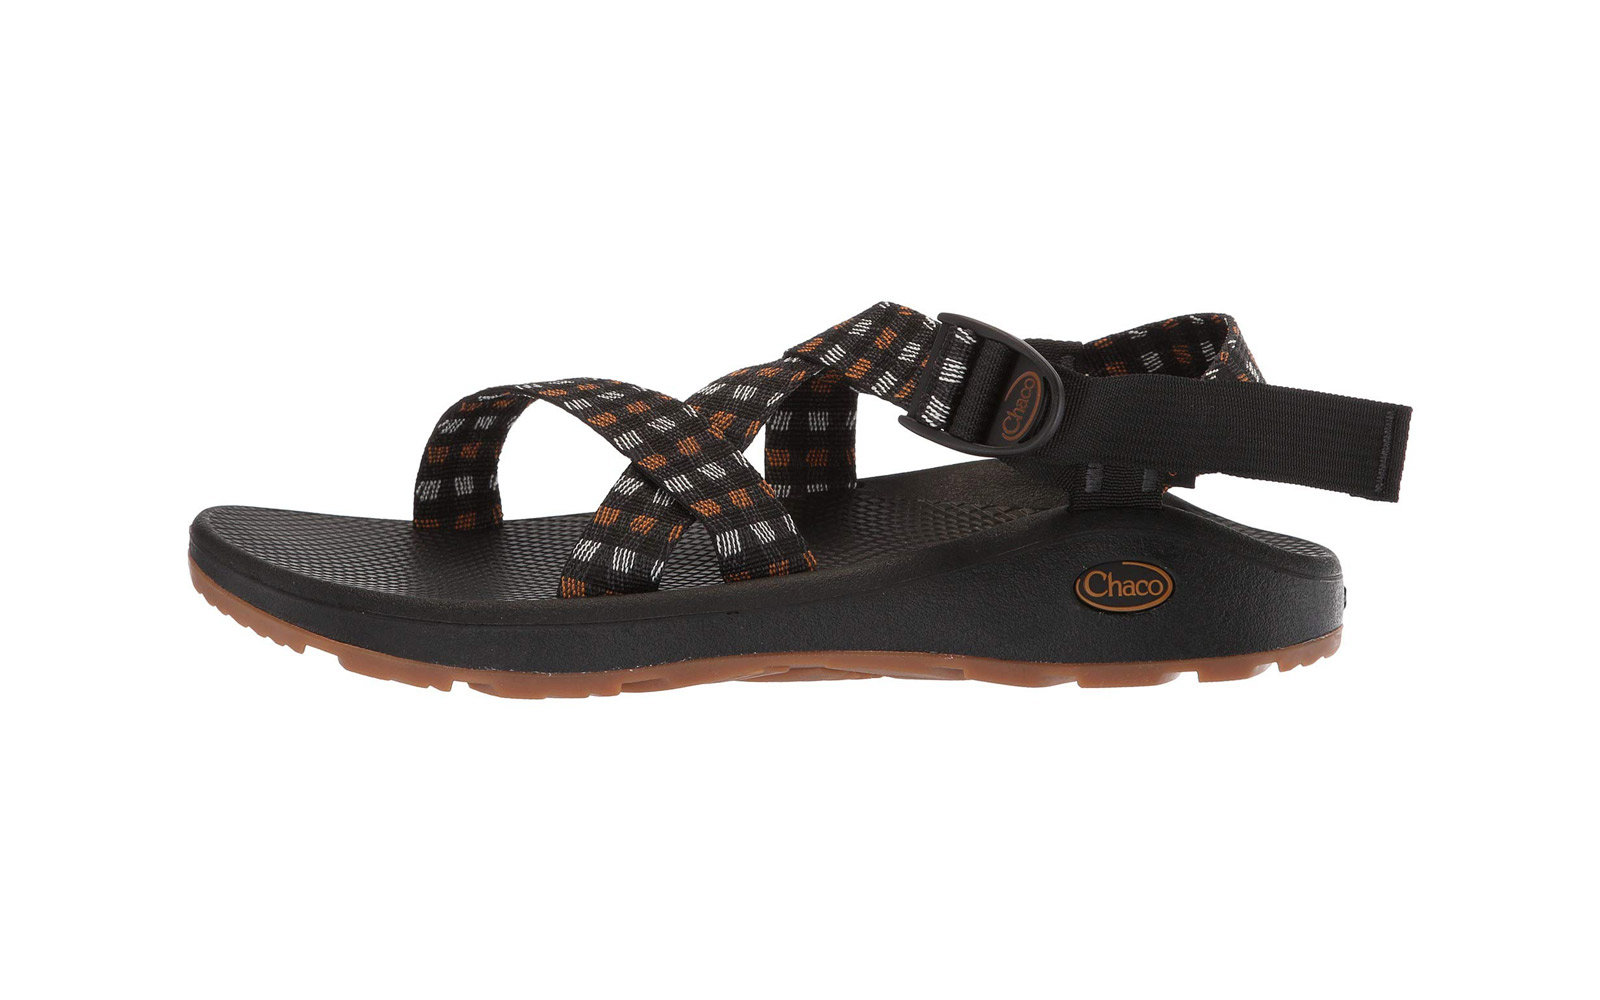 7aa41a43fcaf7 The Best Men s Sandals to Pack for Your Next Vacation